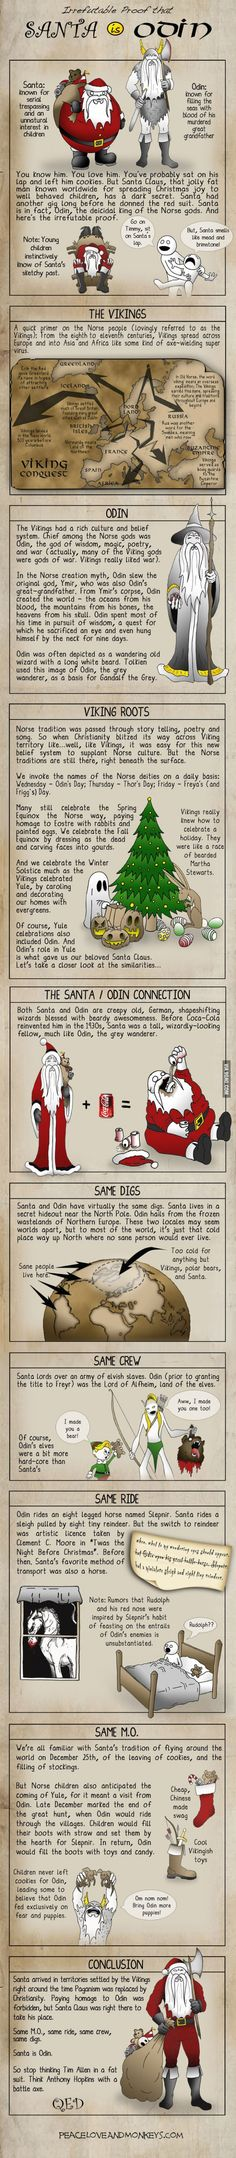 Know thine mythology! Santa IS Odin!!